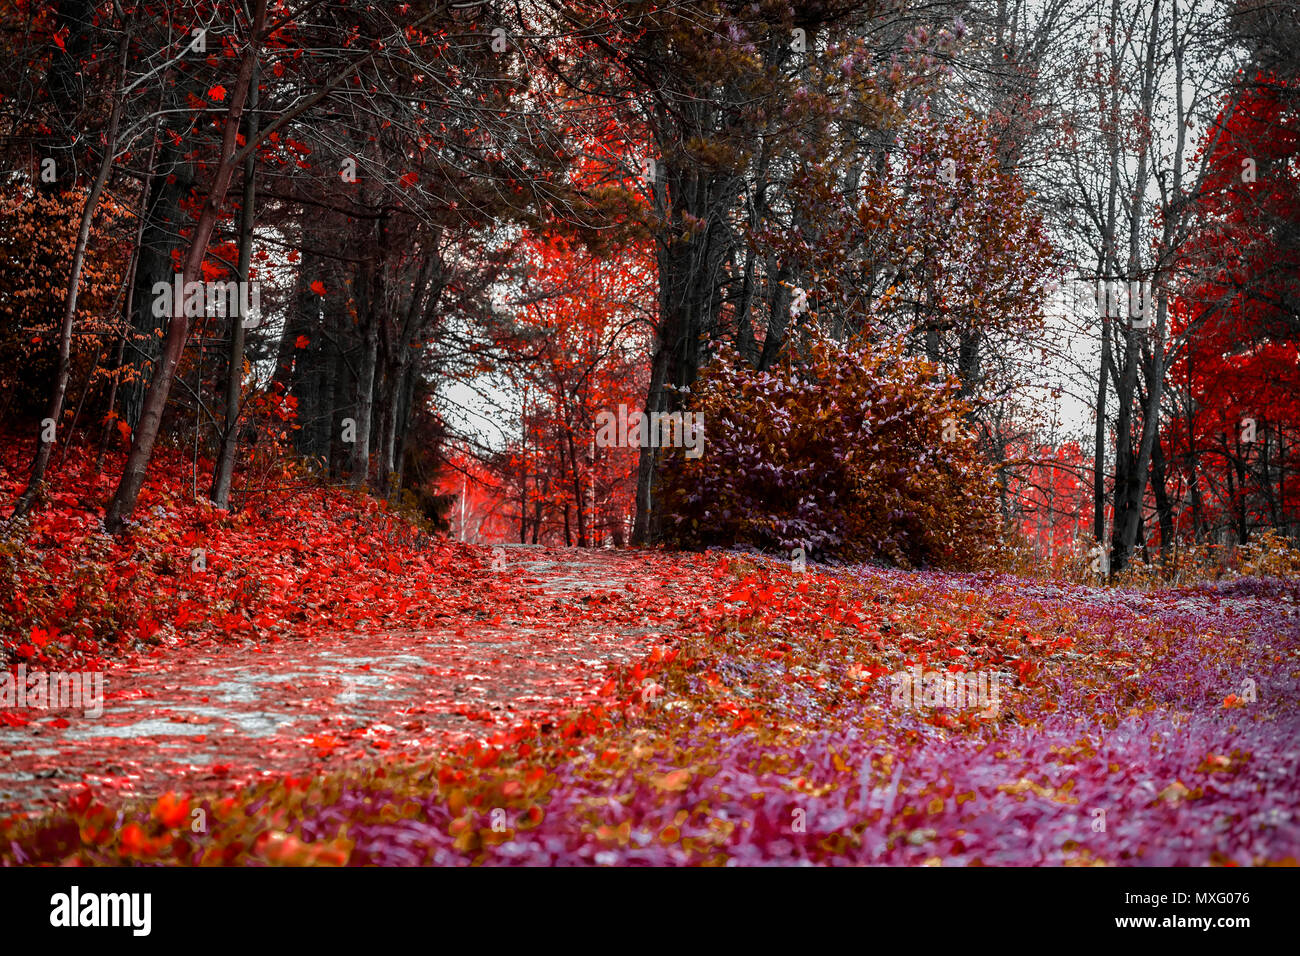 Bright colors of fall. Forest path with many fallen leaves, scarlet autumn landscape in the old park. Walking, mood, nostalgia concept - Stock Image